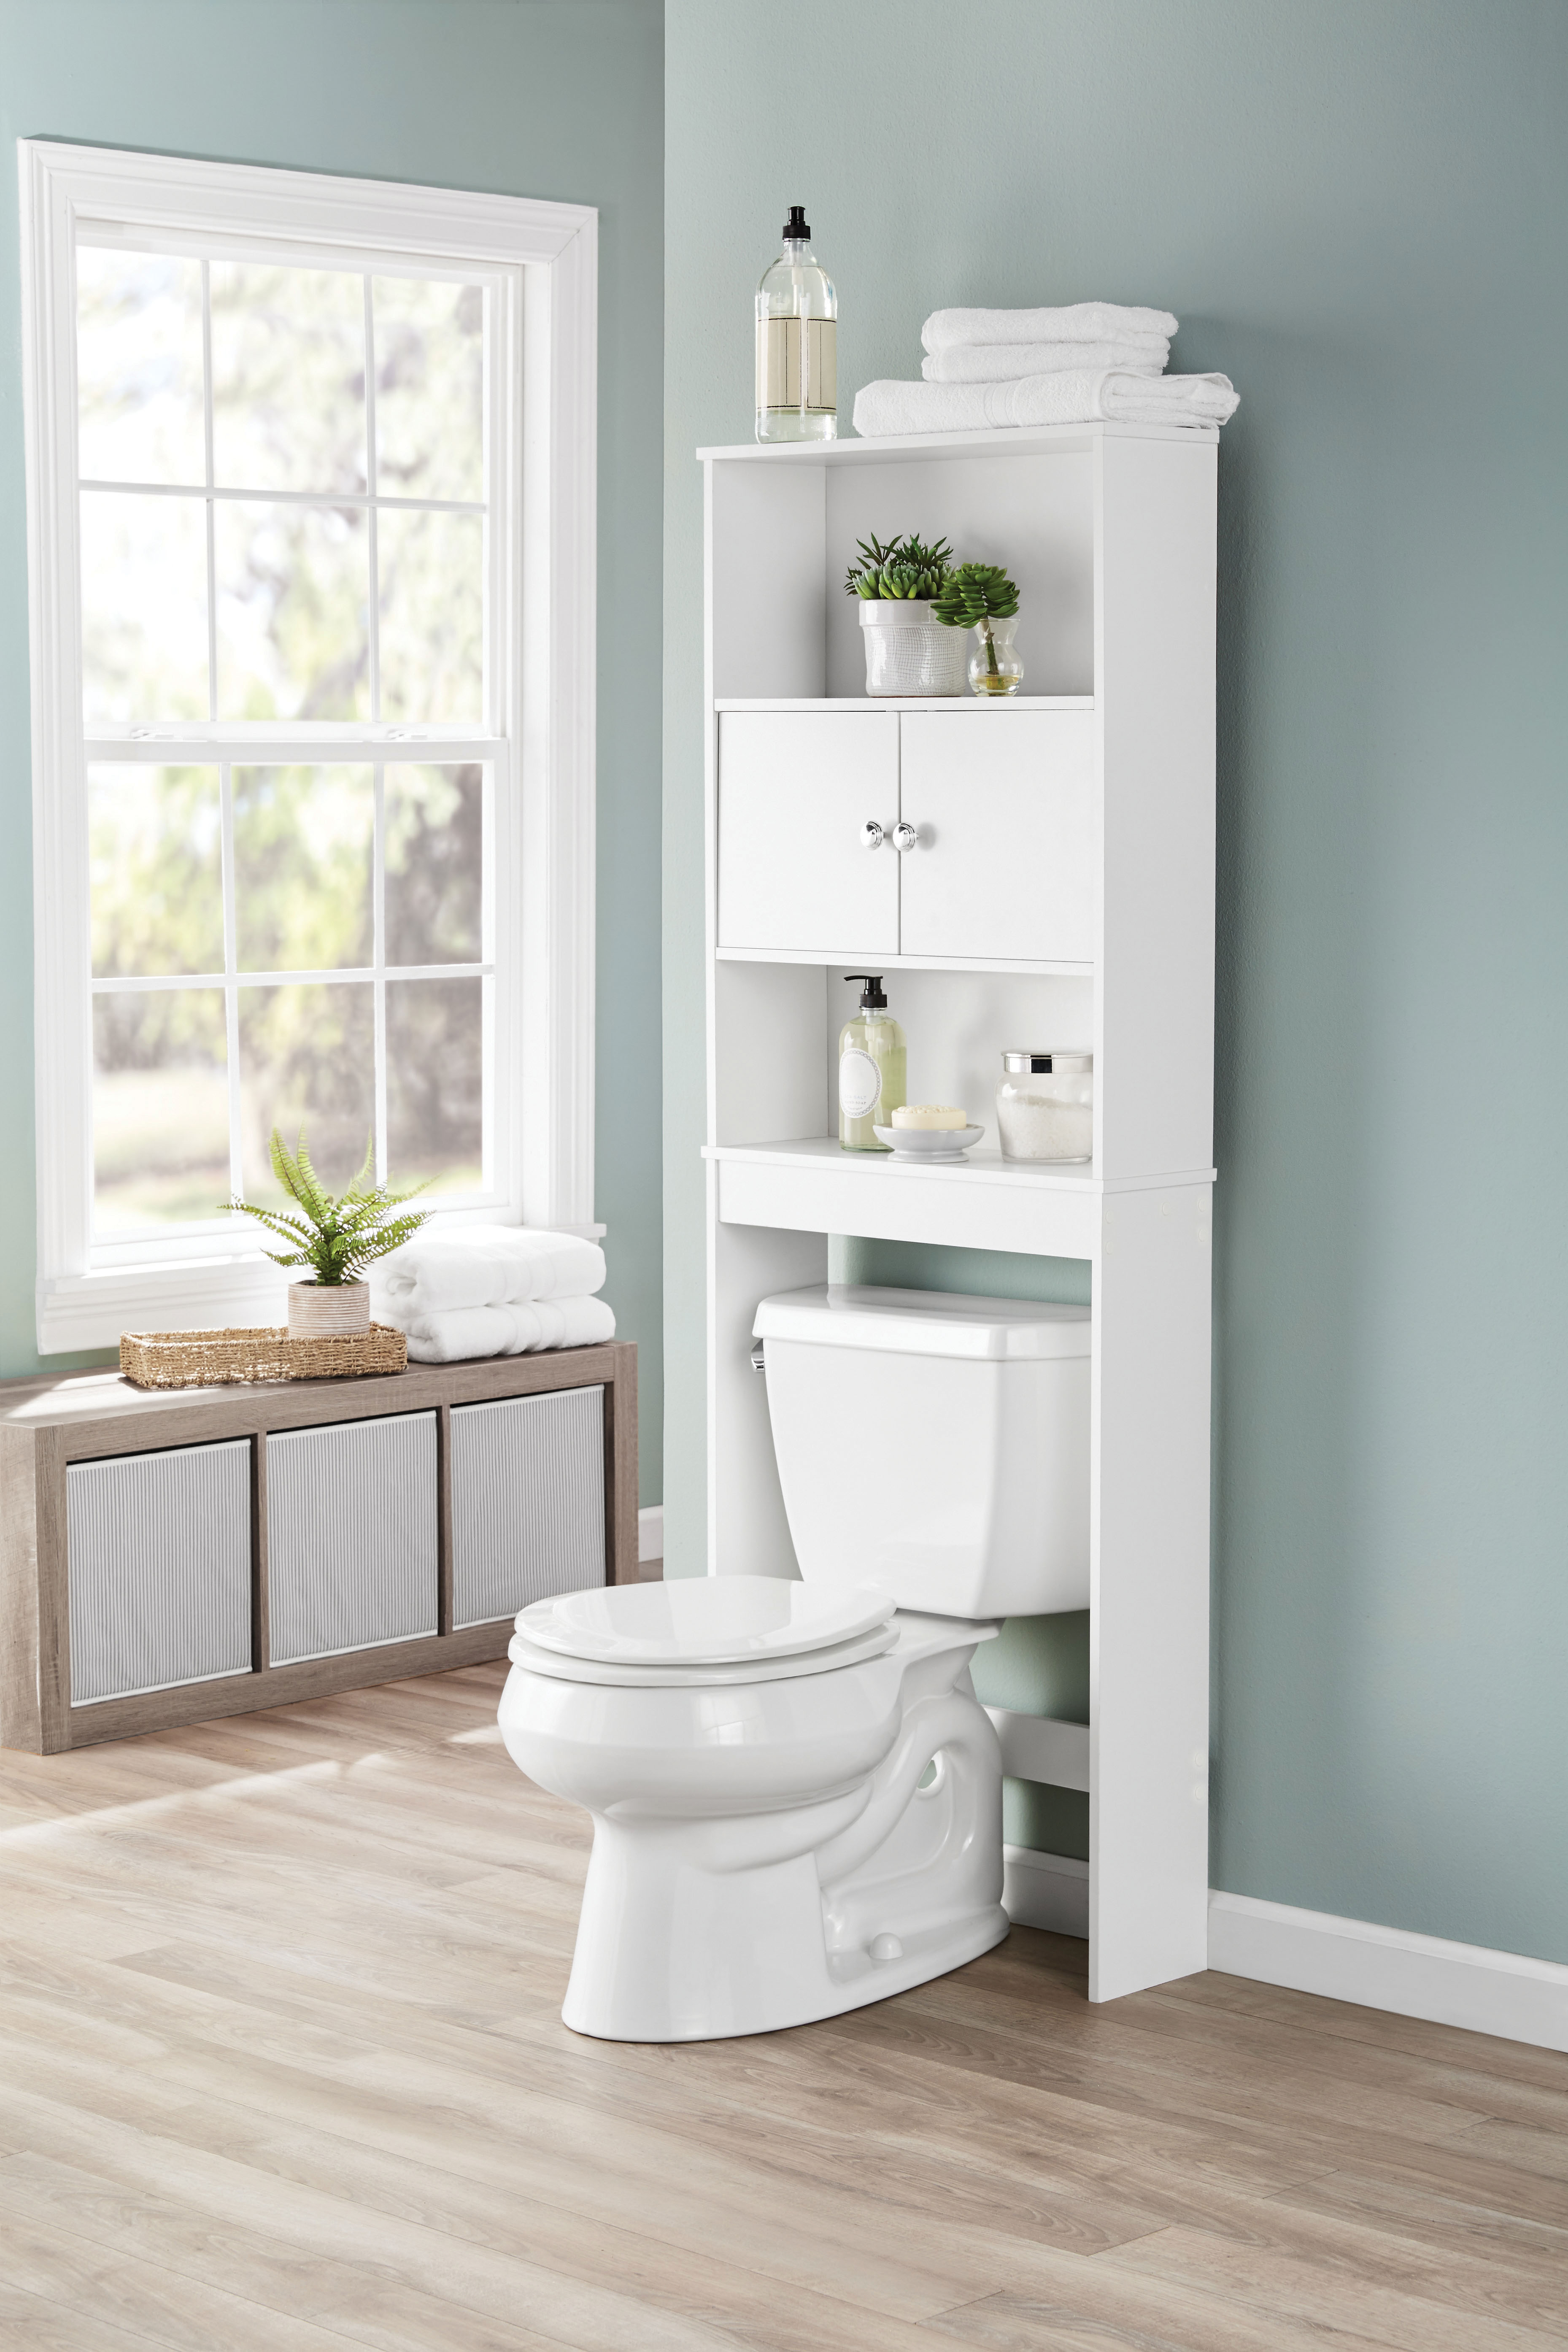 Mainstays Bathroom Storage Over The Toilet Space Saver White for dimensions 3717 X 5575